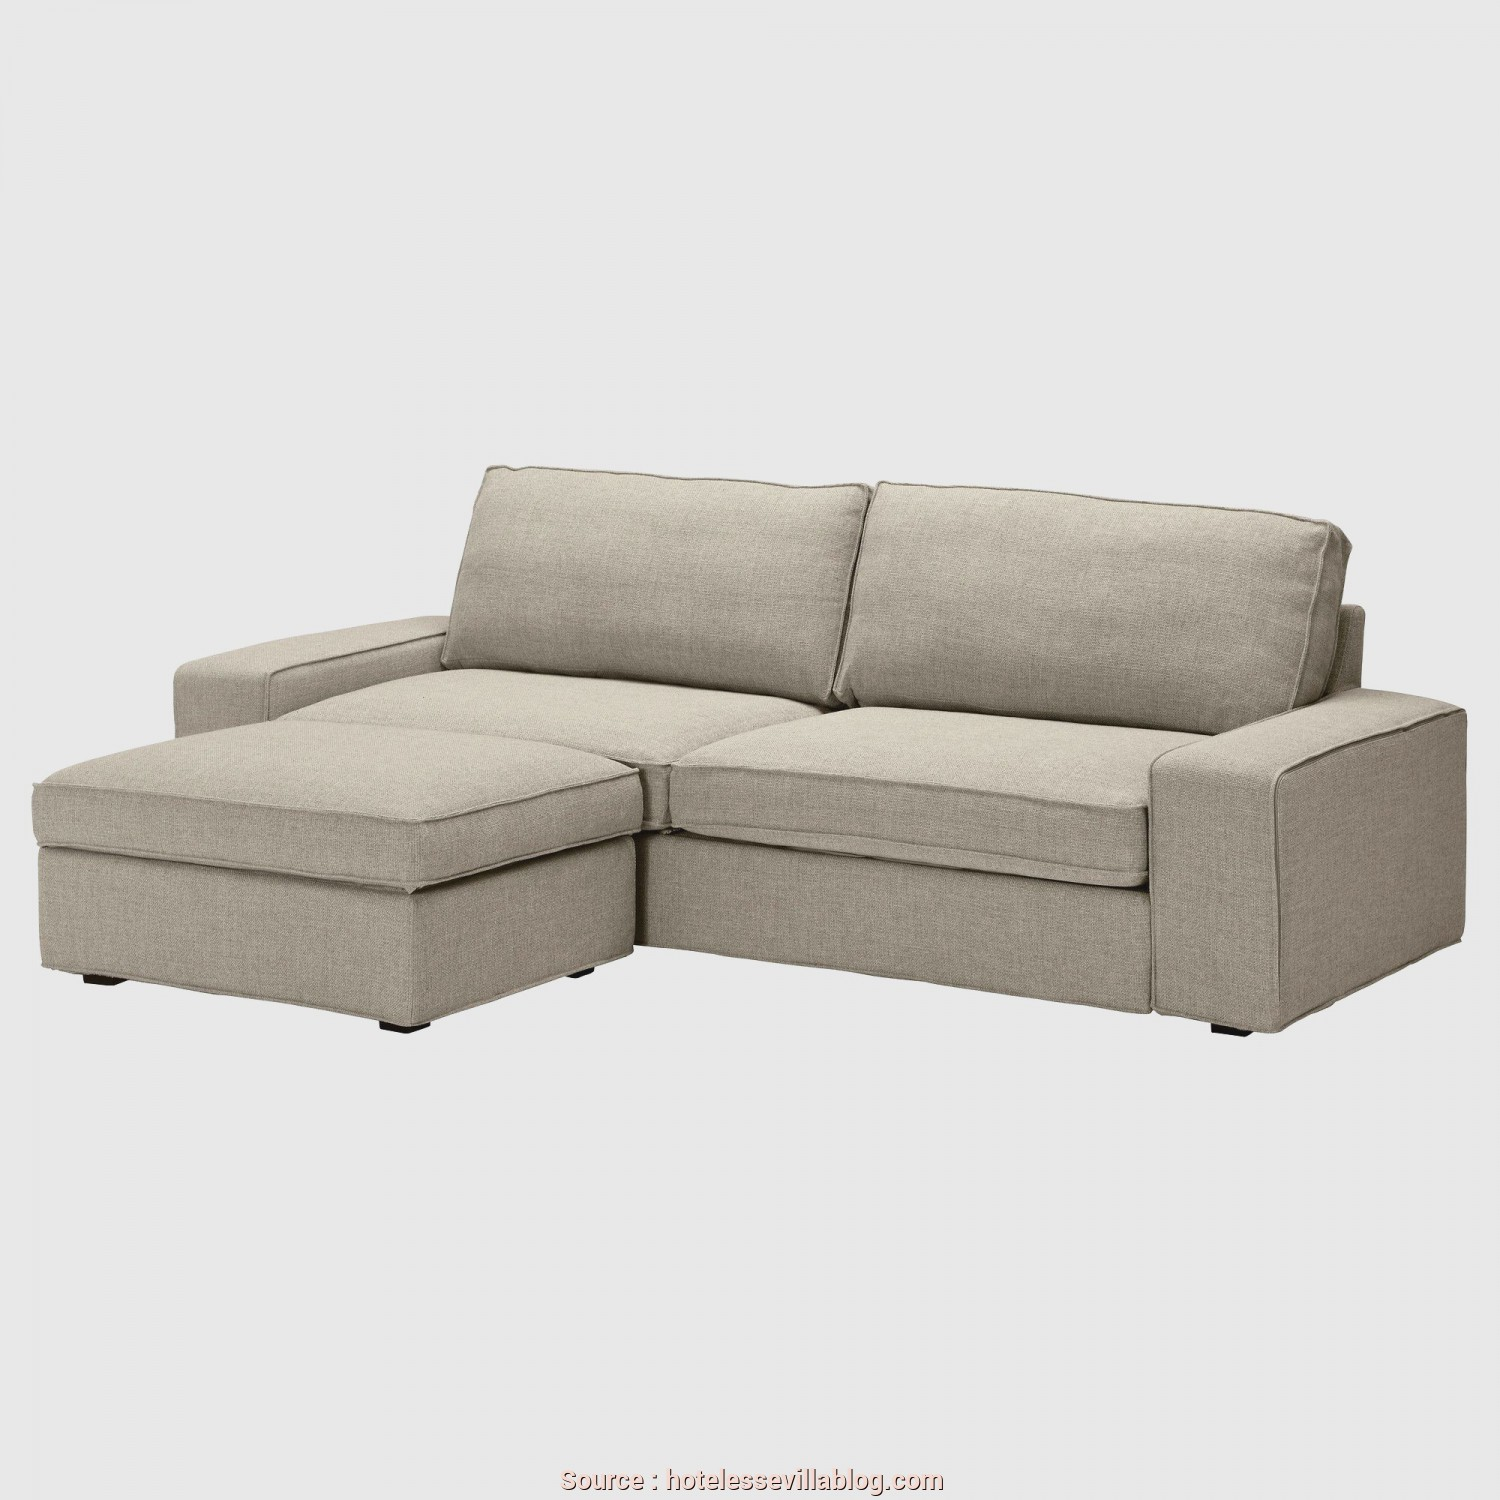 Divano Kivik Beige, Magnifico Perfect Kivik Sofabed With Footstool Ikea Generous Seating Series With A Soft Deep Seat, Fortable